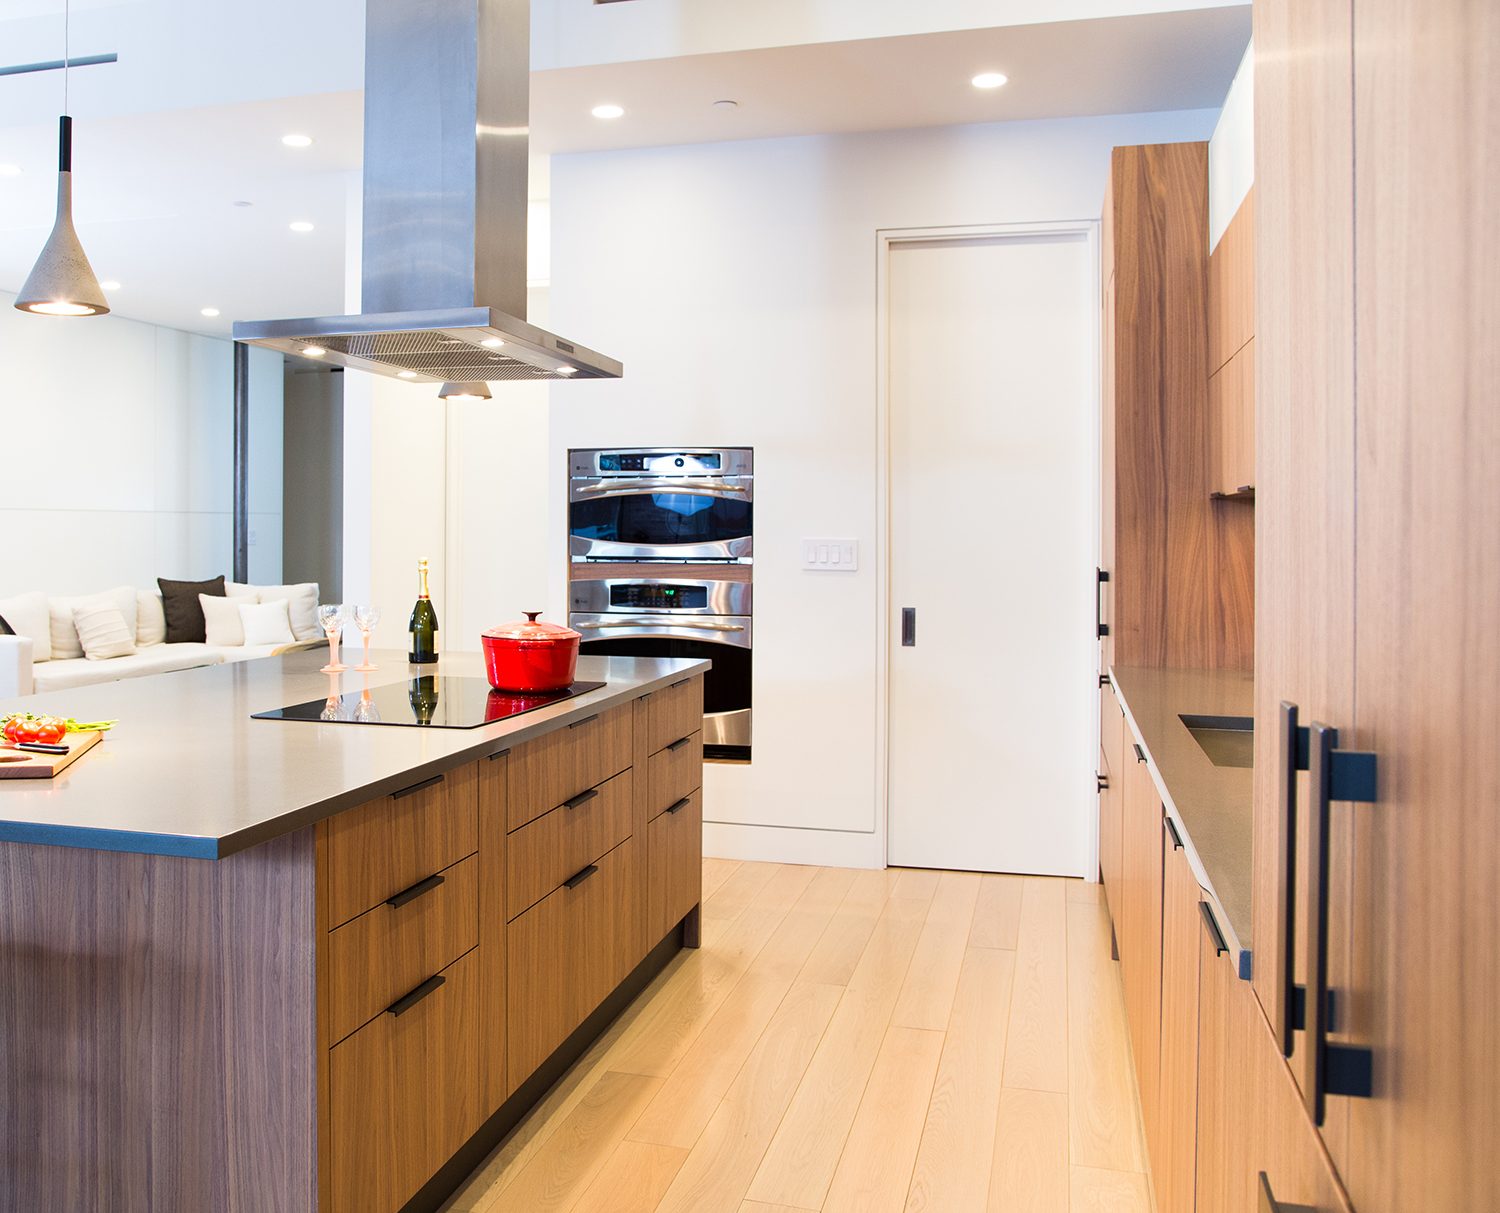 Contemporary style kitchen with hardwood floor